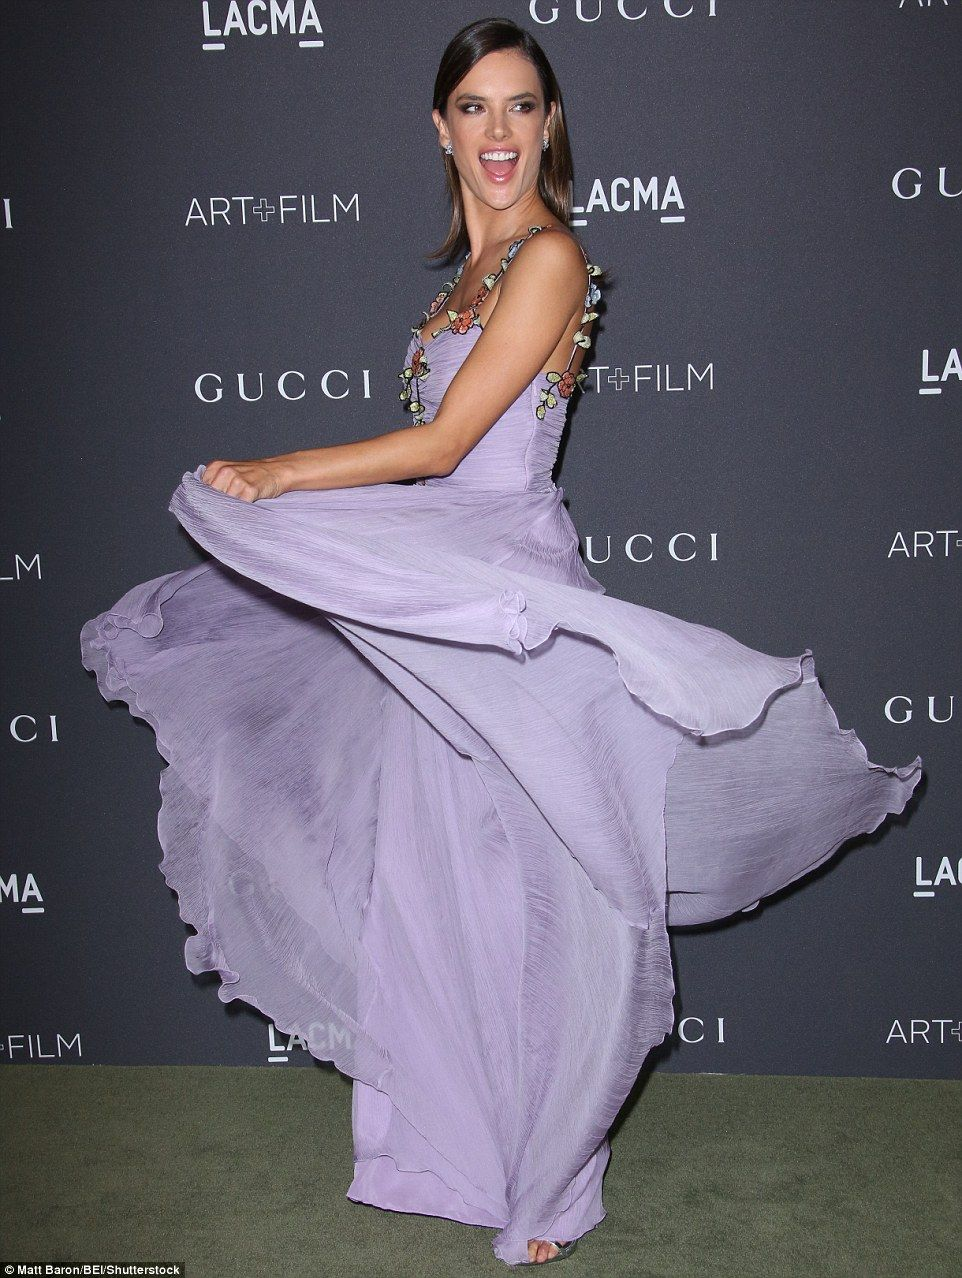 Alessandra Ambrosio shows off bare back in lovely flower-strap #Gucci gown at LACMA Art + Film Gala on October 29, 2016